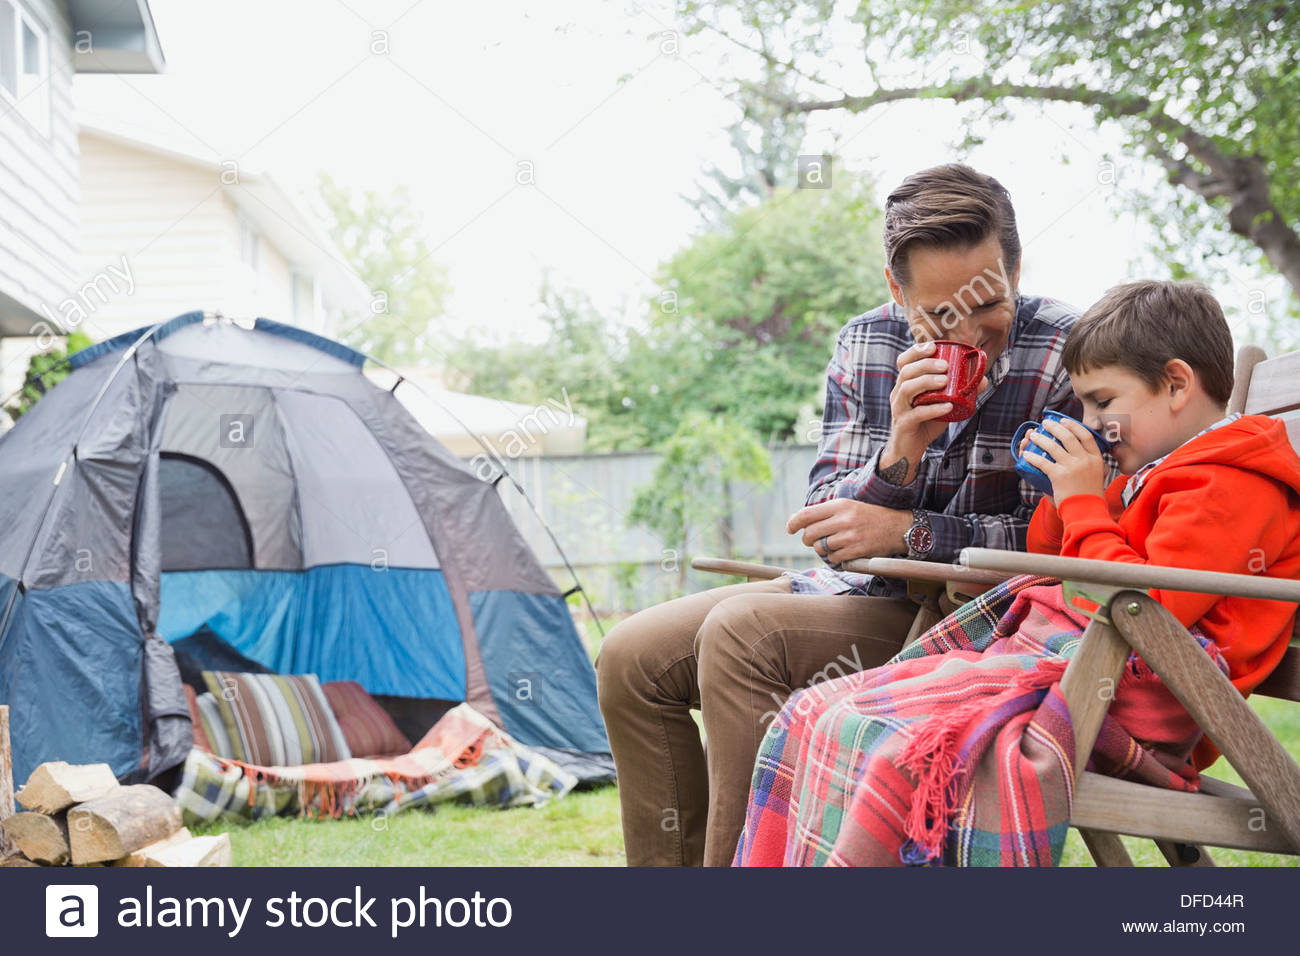 Father and son drinking hot chocolate while camping in backyard - Stock Image